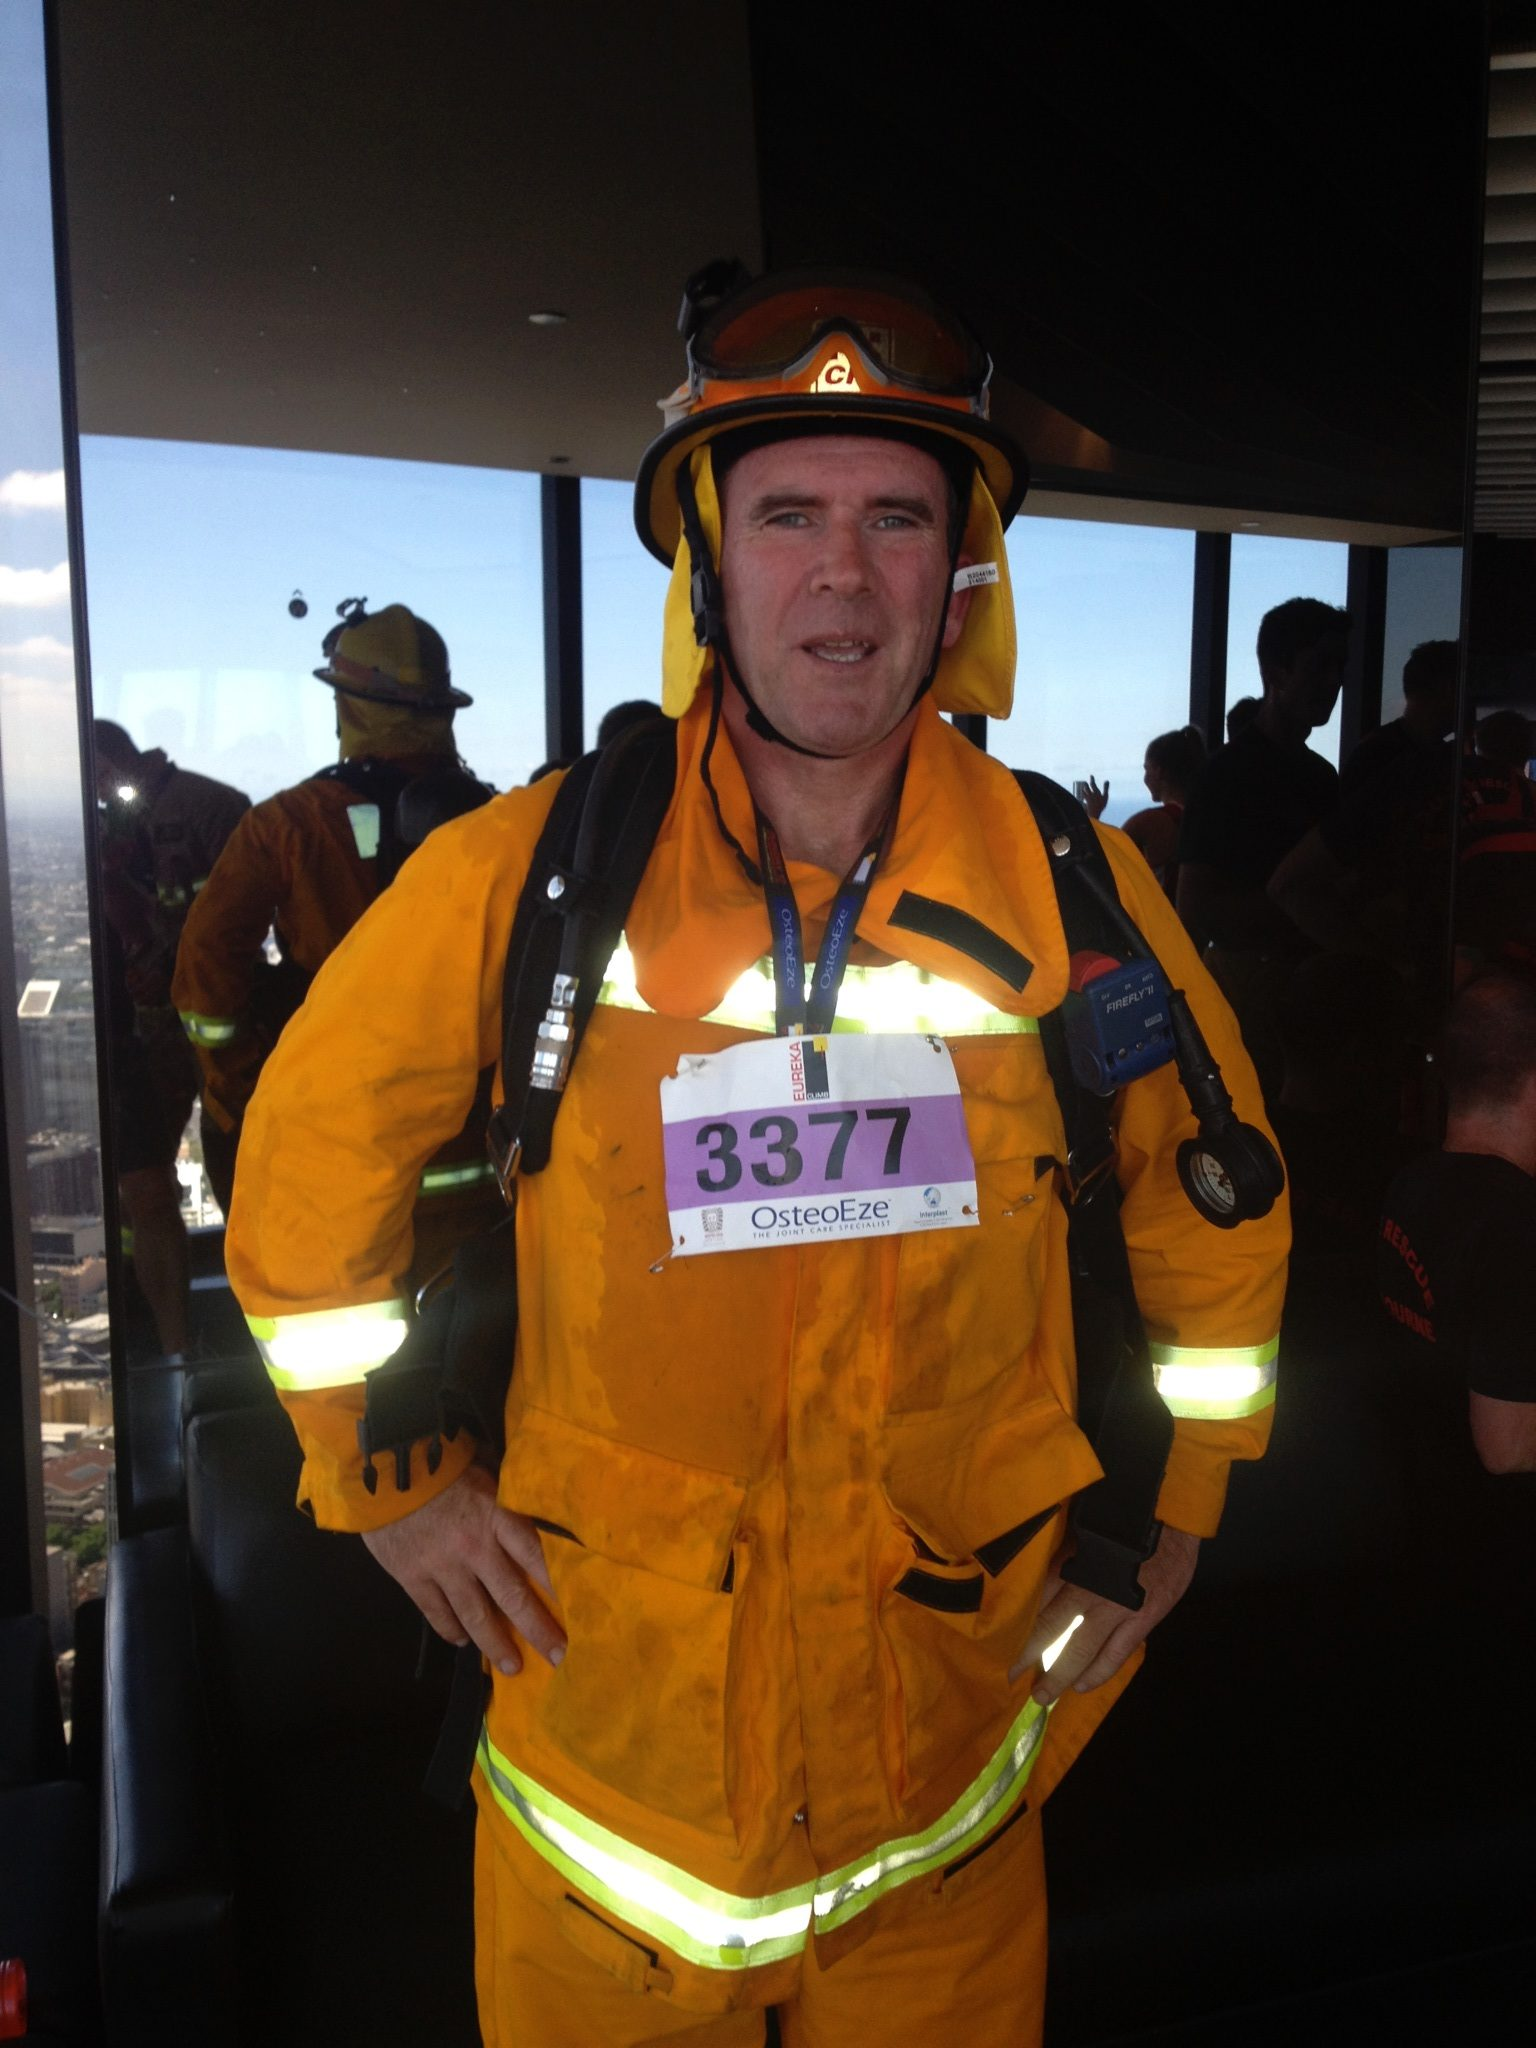 photo showing 50-year-old man in volunteer firefighter uniform with charity number on his chest looking tired